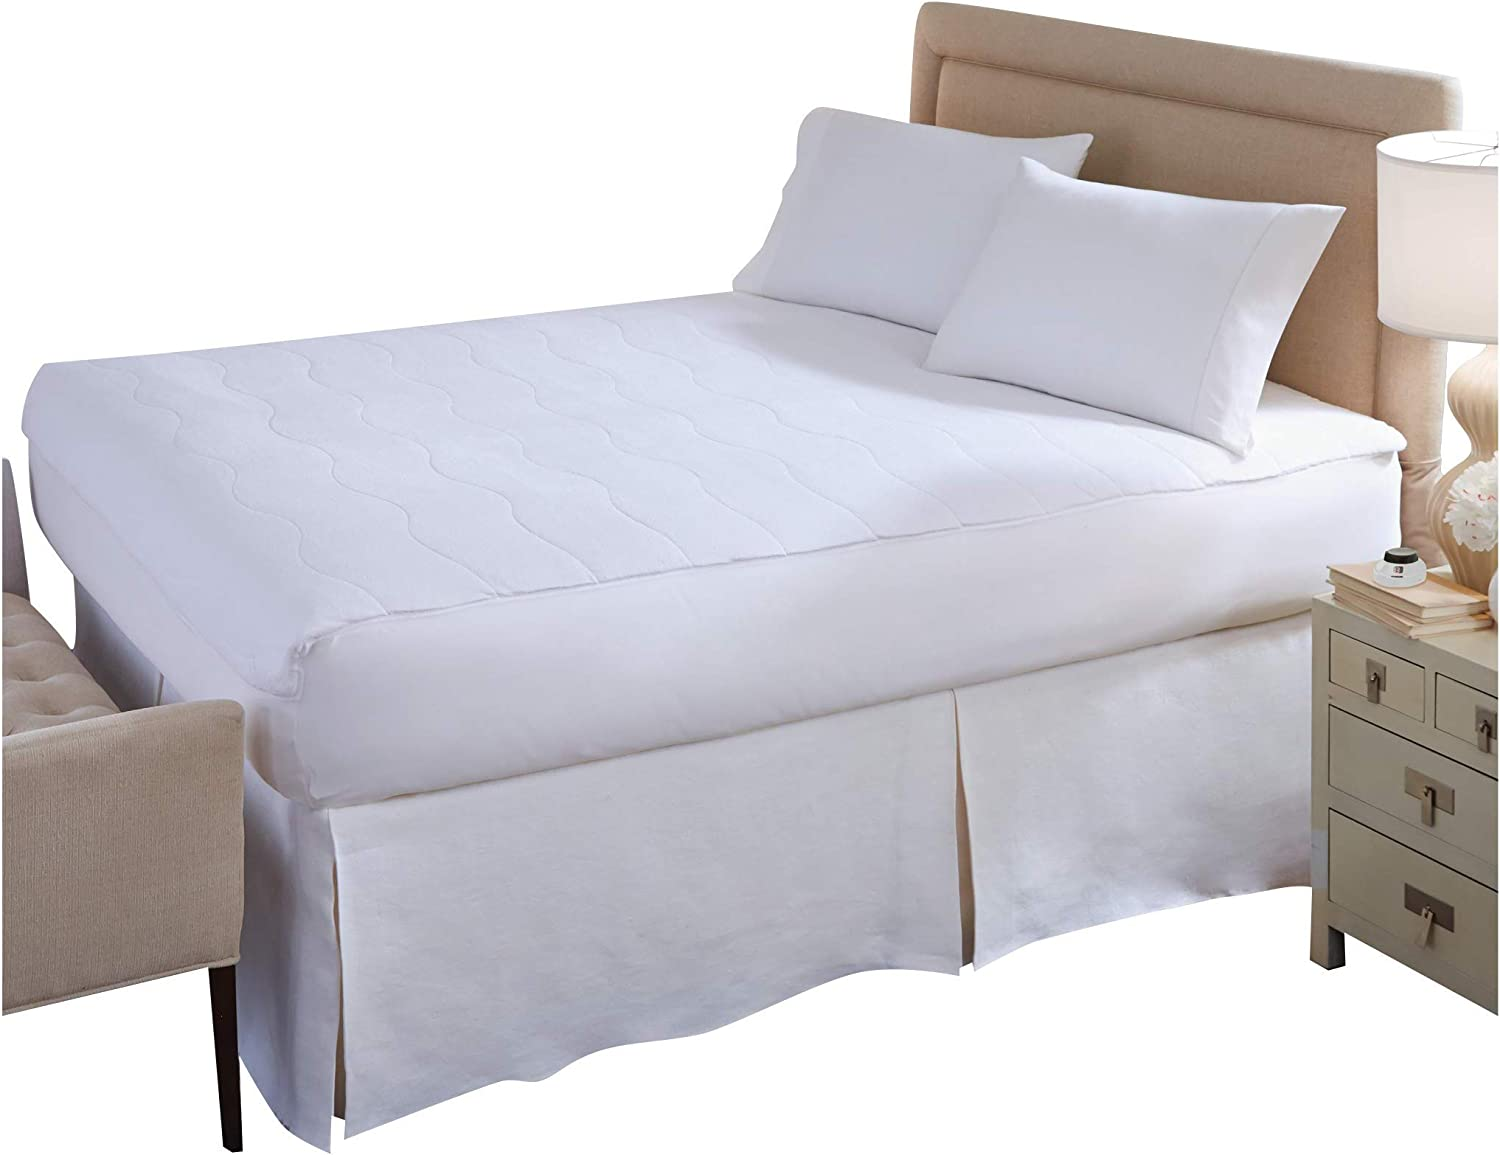 Perfect lowest price Fit Long Beach Mall SoftHeat Smart Heated with Saf Pad Electric Mattress